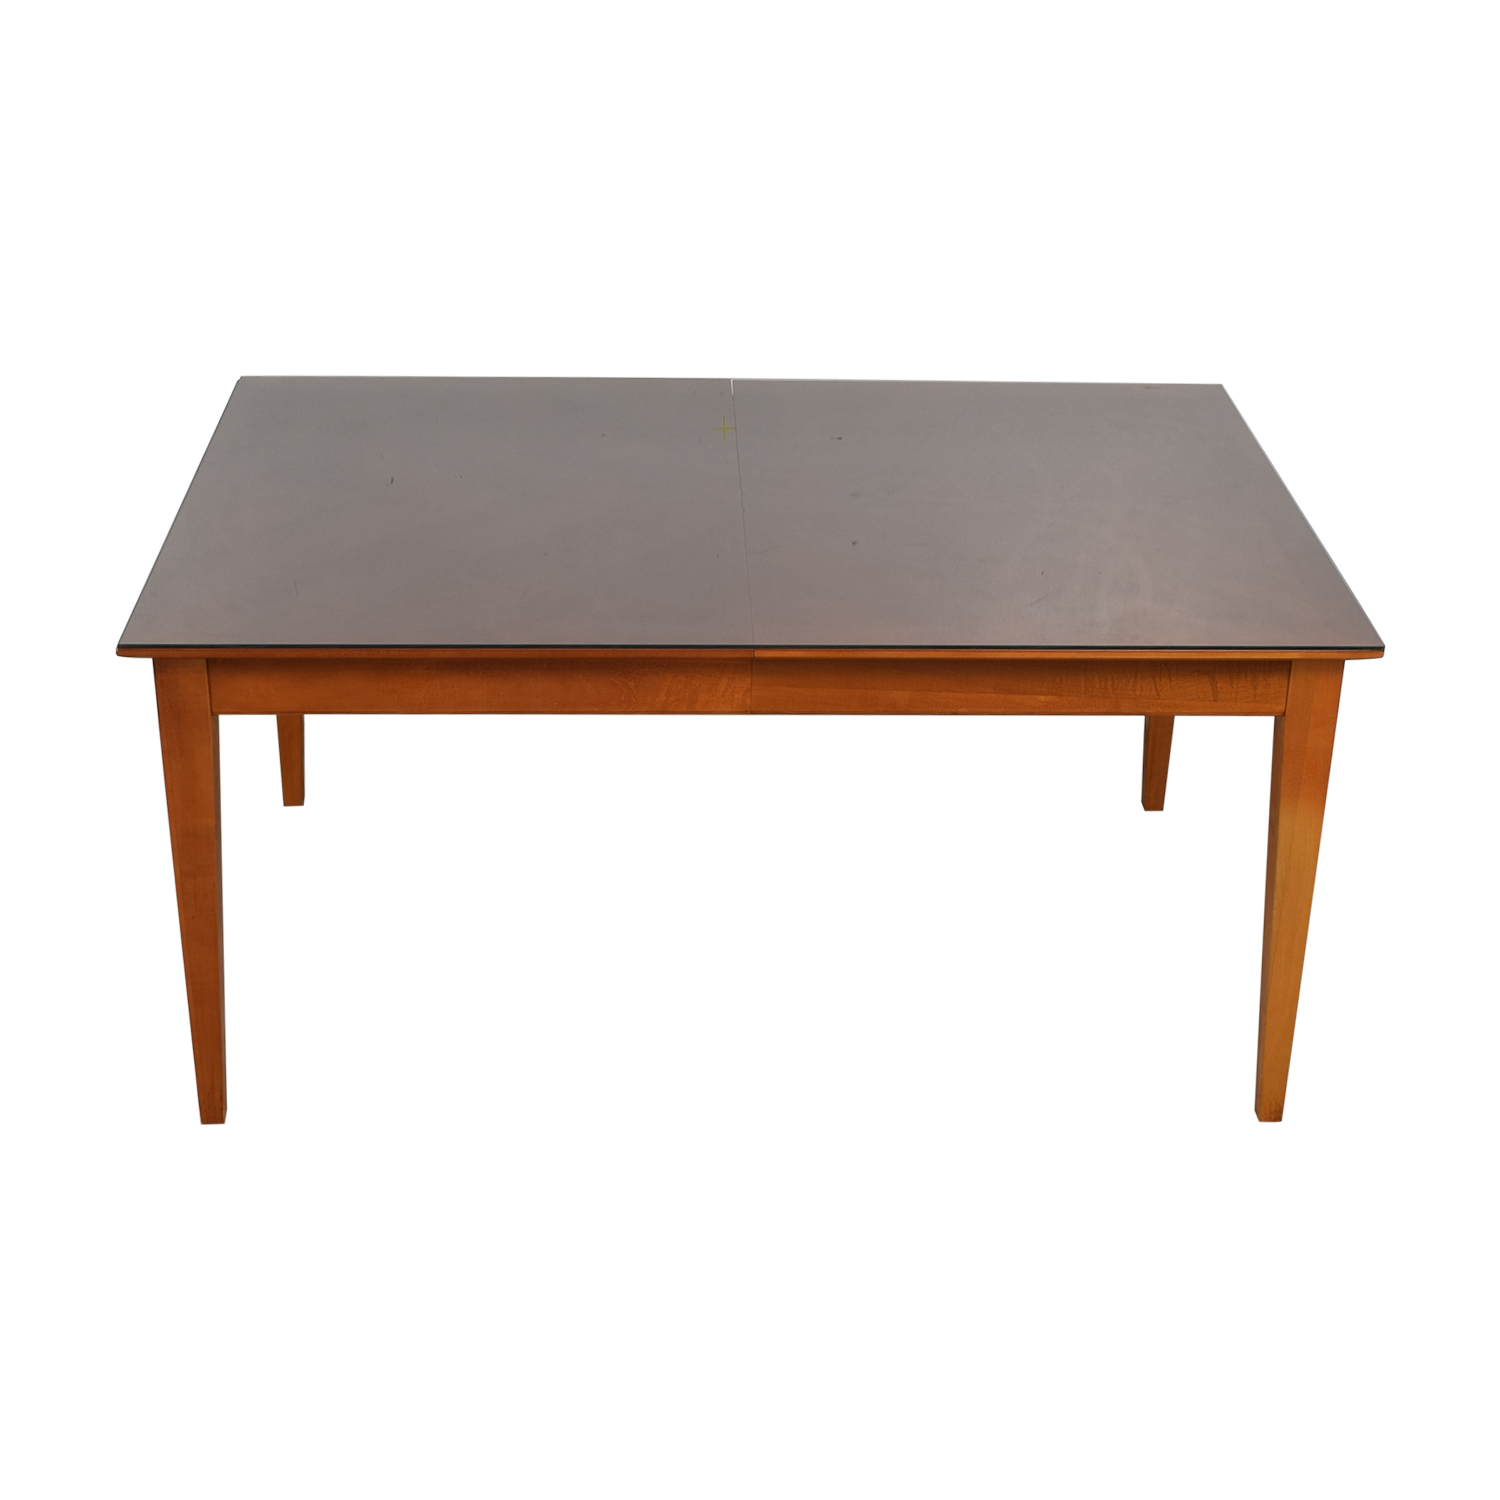 Thomasville Thomasville Extendable Wood Dining Table second hand